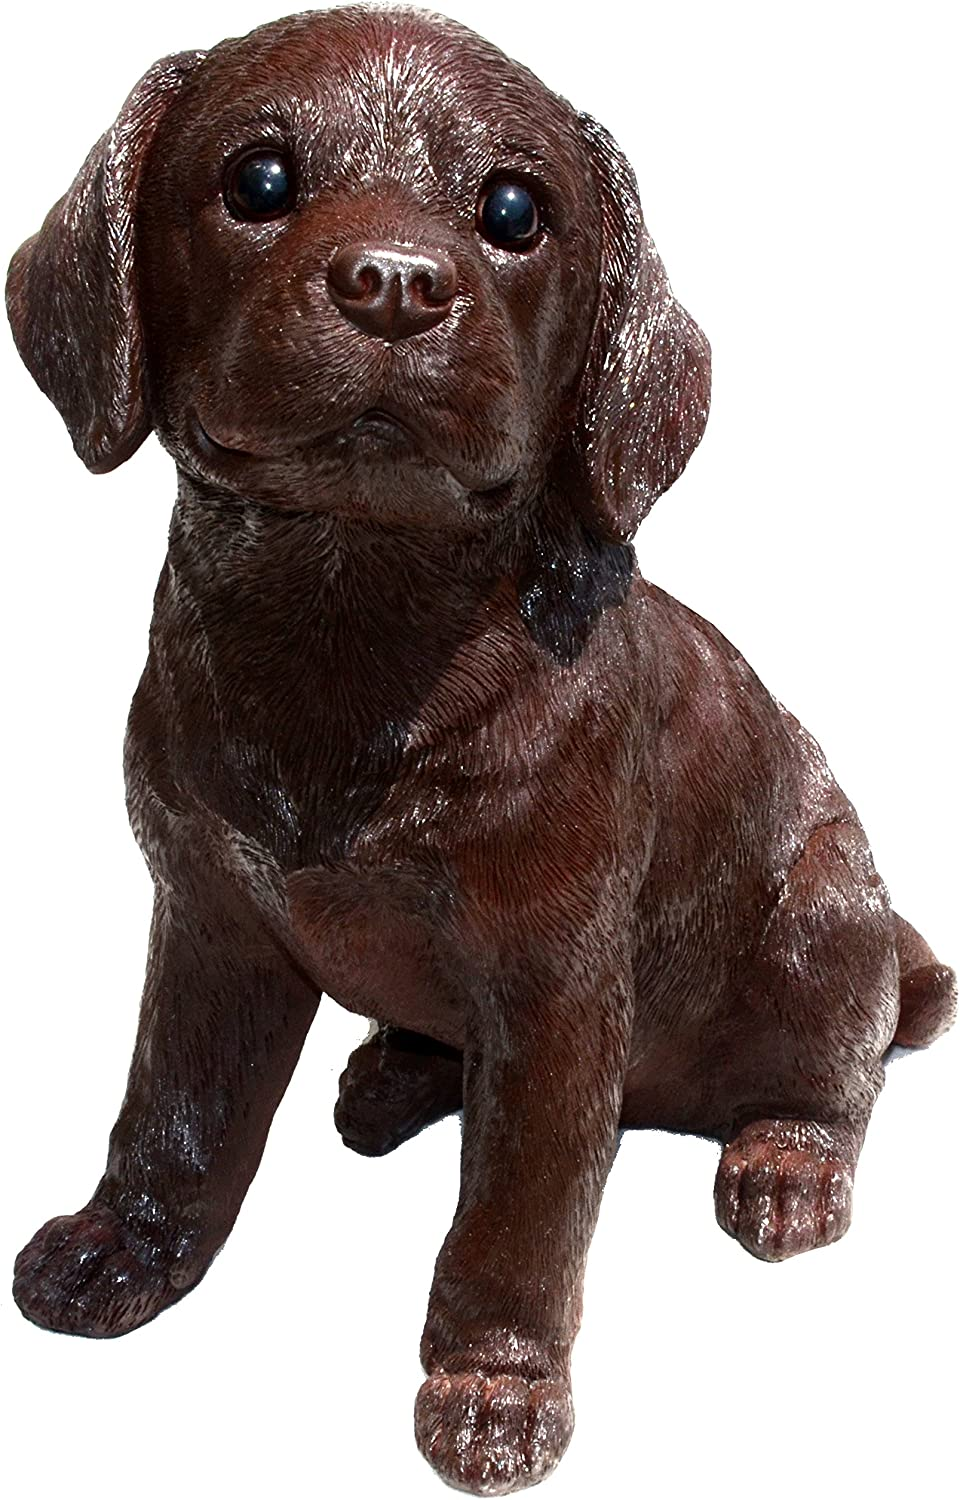 Michael Carr Designs Chocolate Labrador L Fudge Puppy Love Outdoor Dog Figurine for Gardens, patios and lawns (80100)